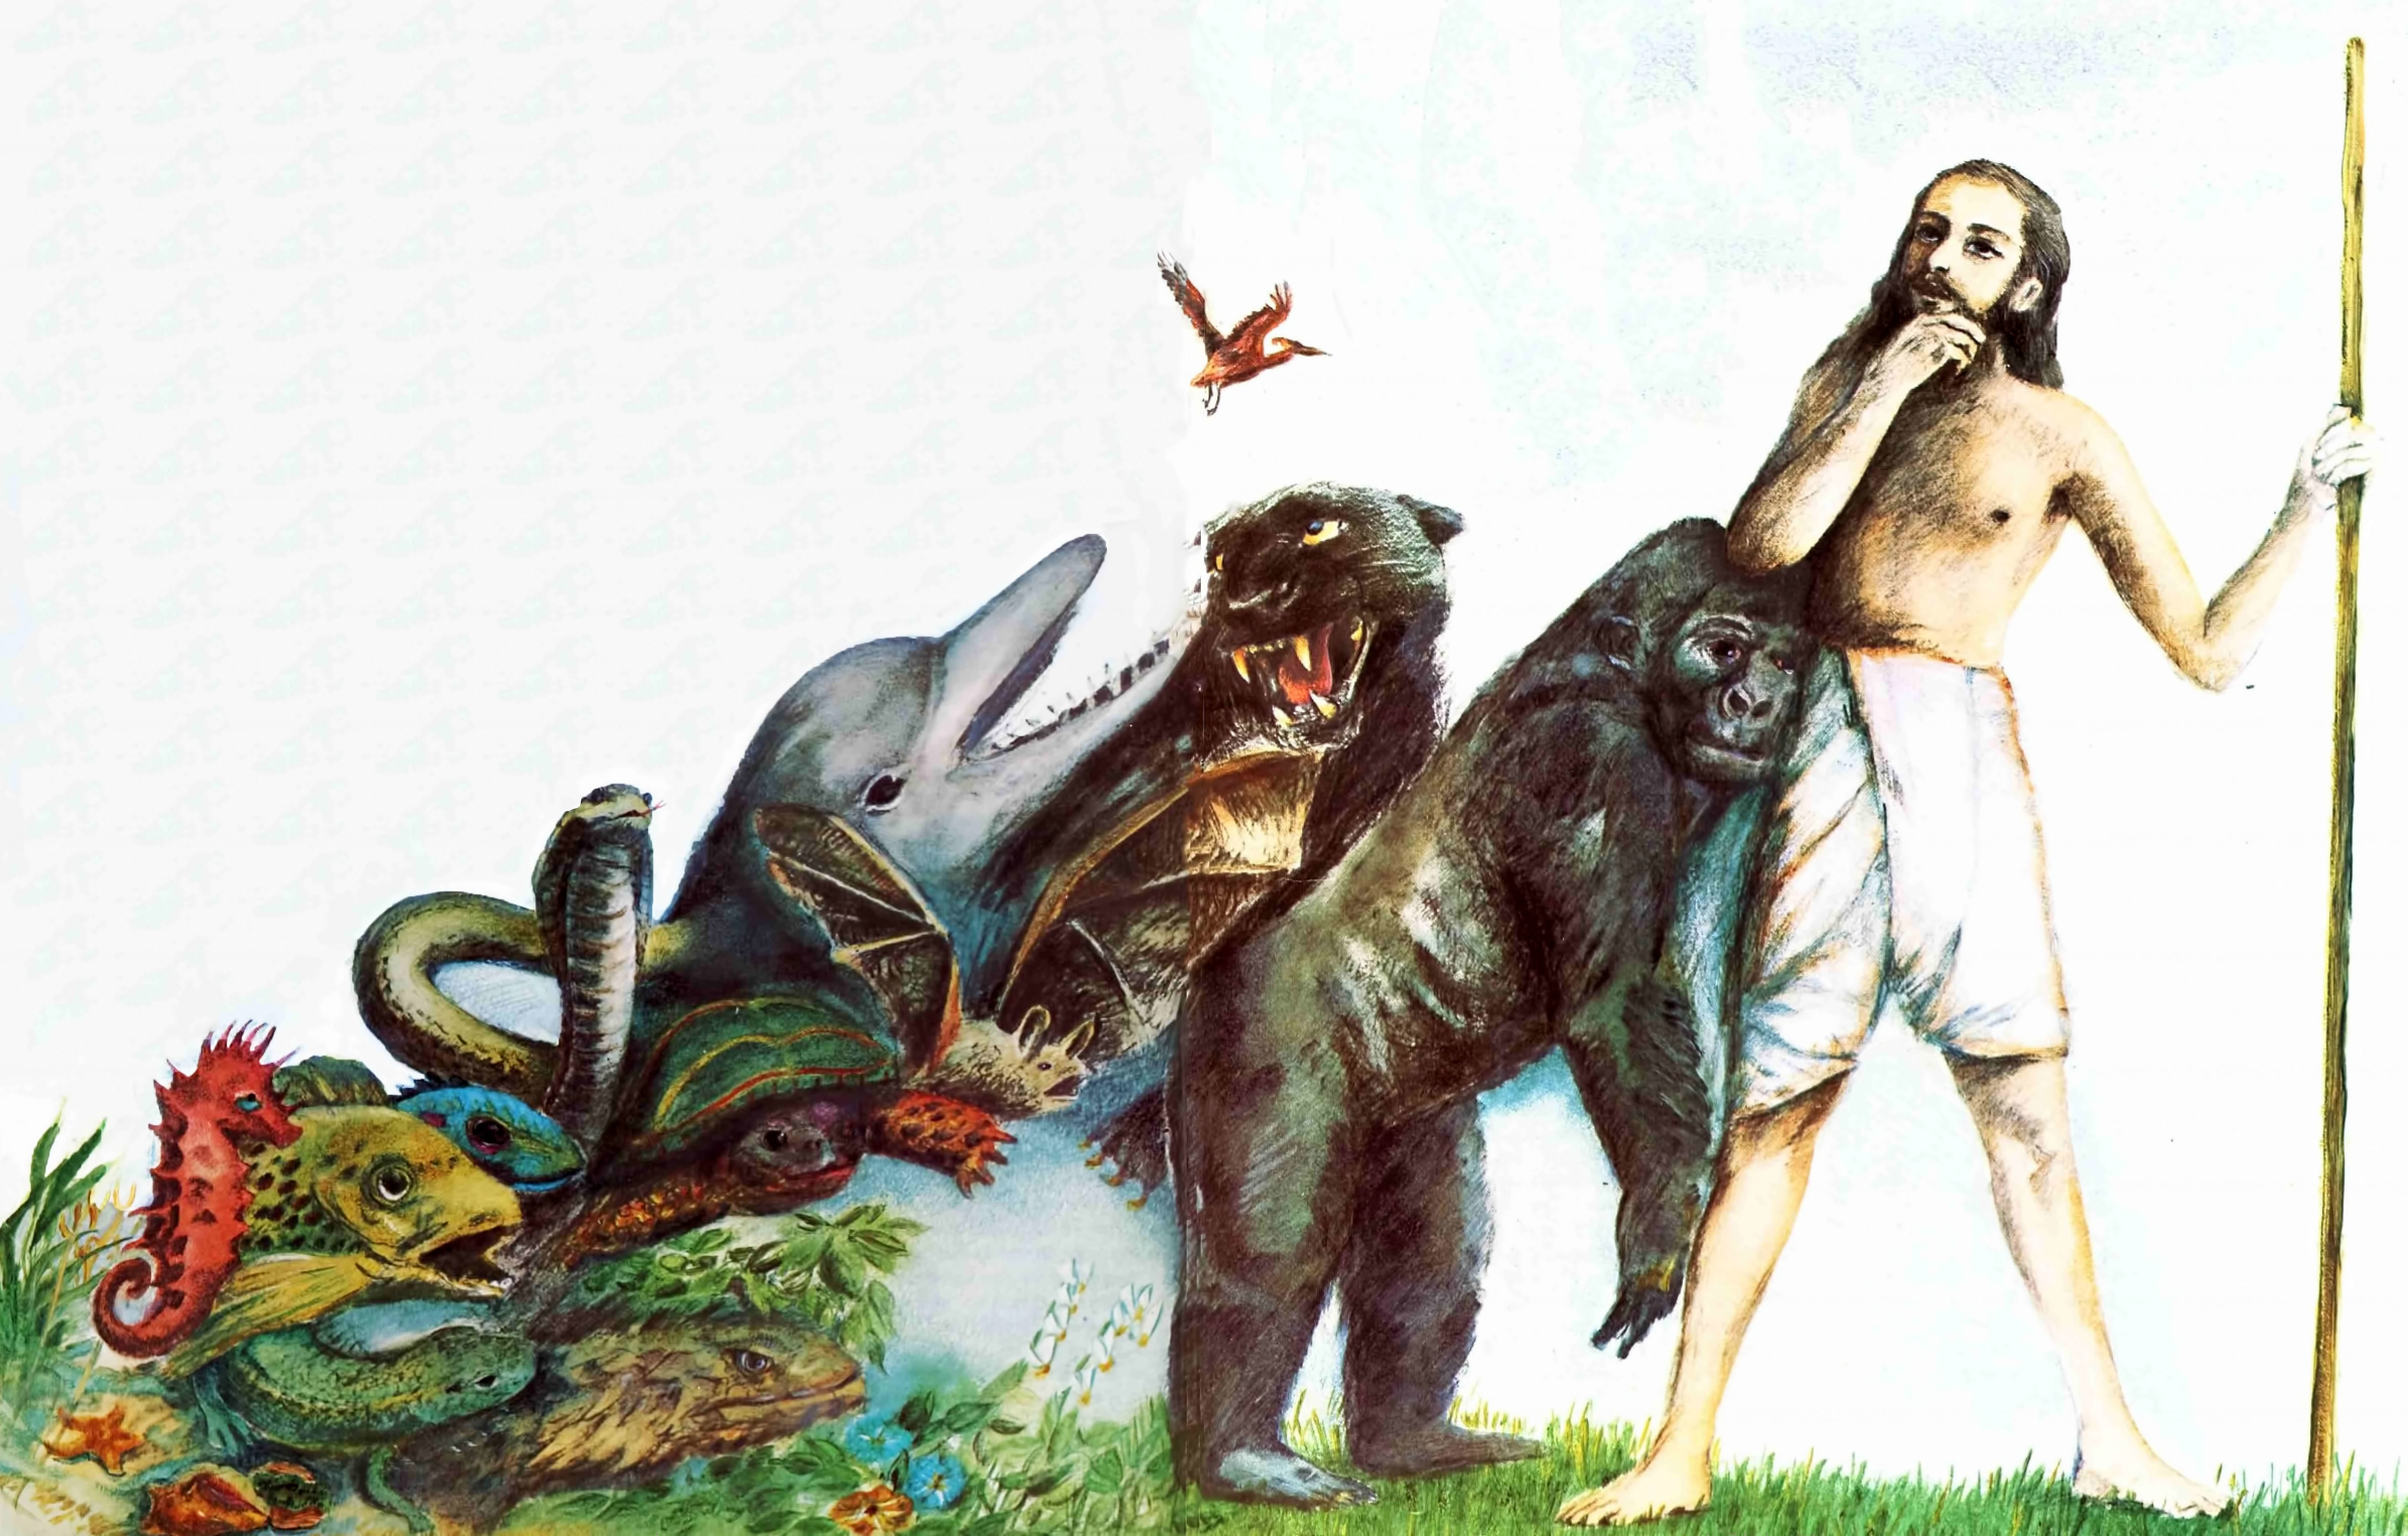 darwinism a crumbling theory org full size image